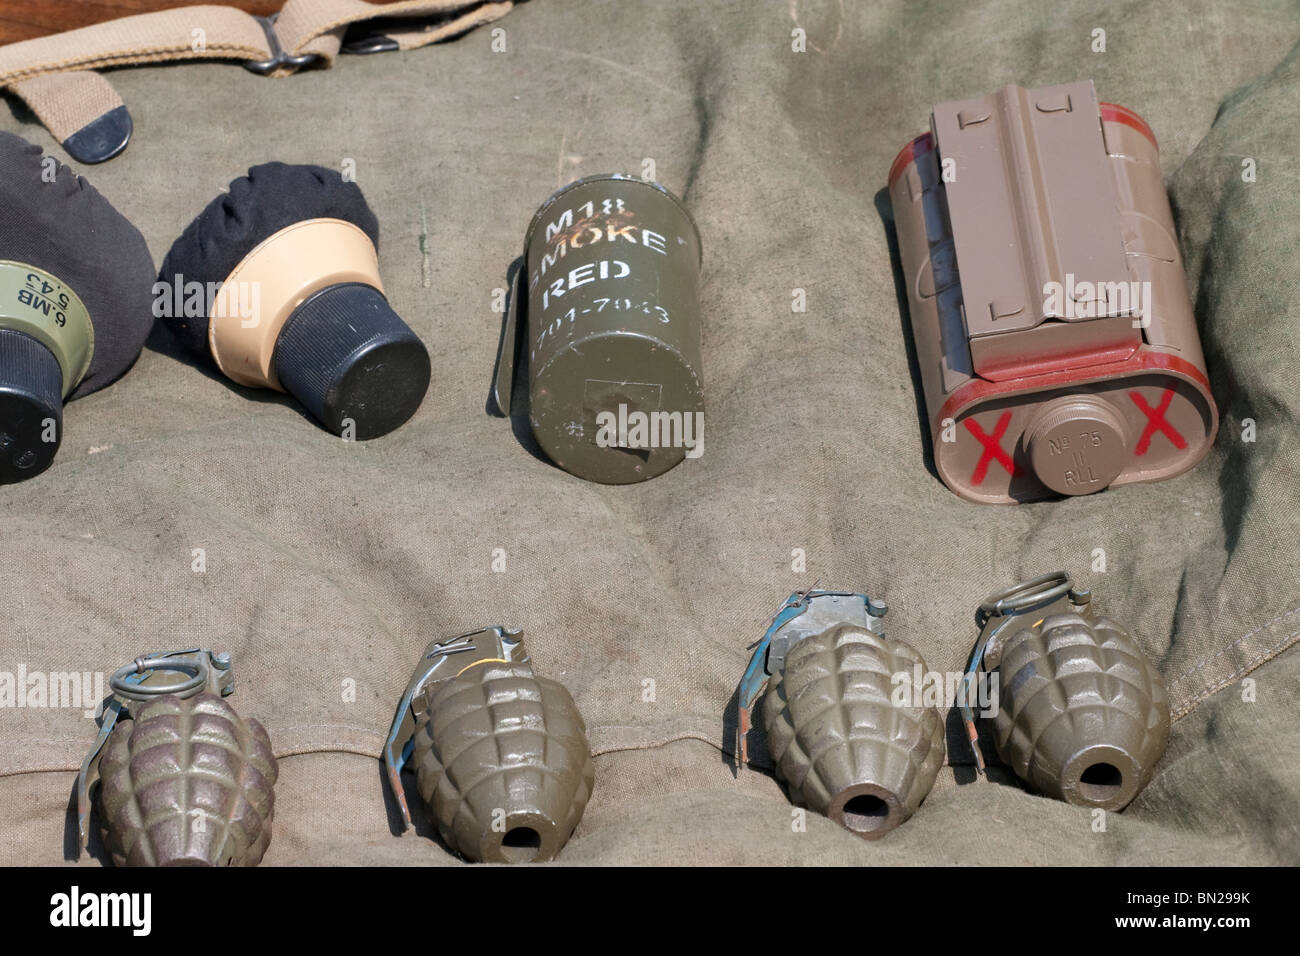 Hand grenades and other weapons dating from world war 2 - Stock Image